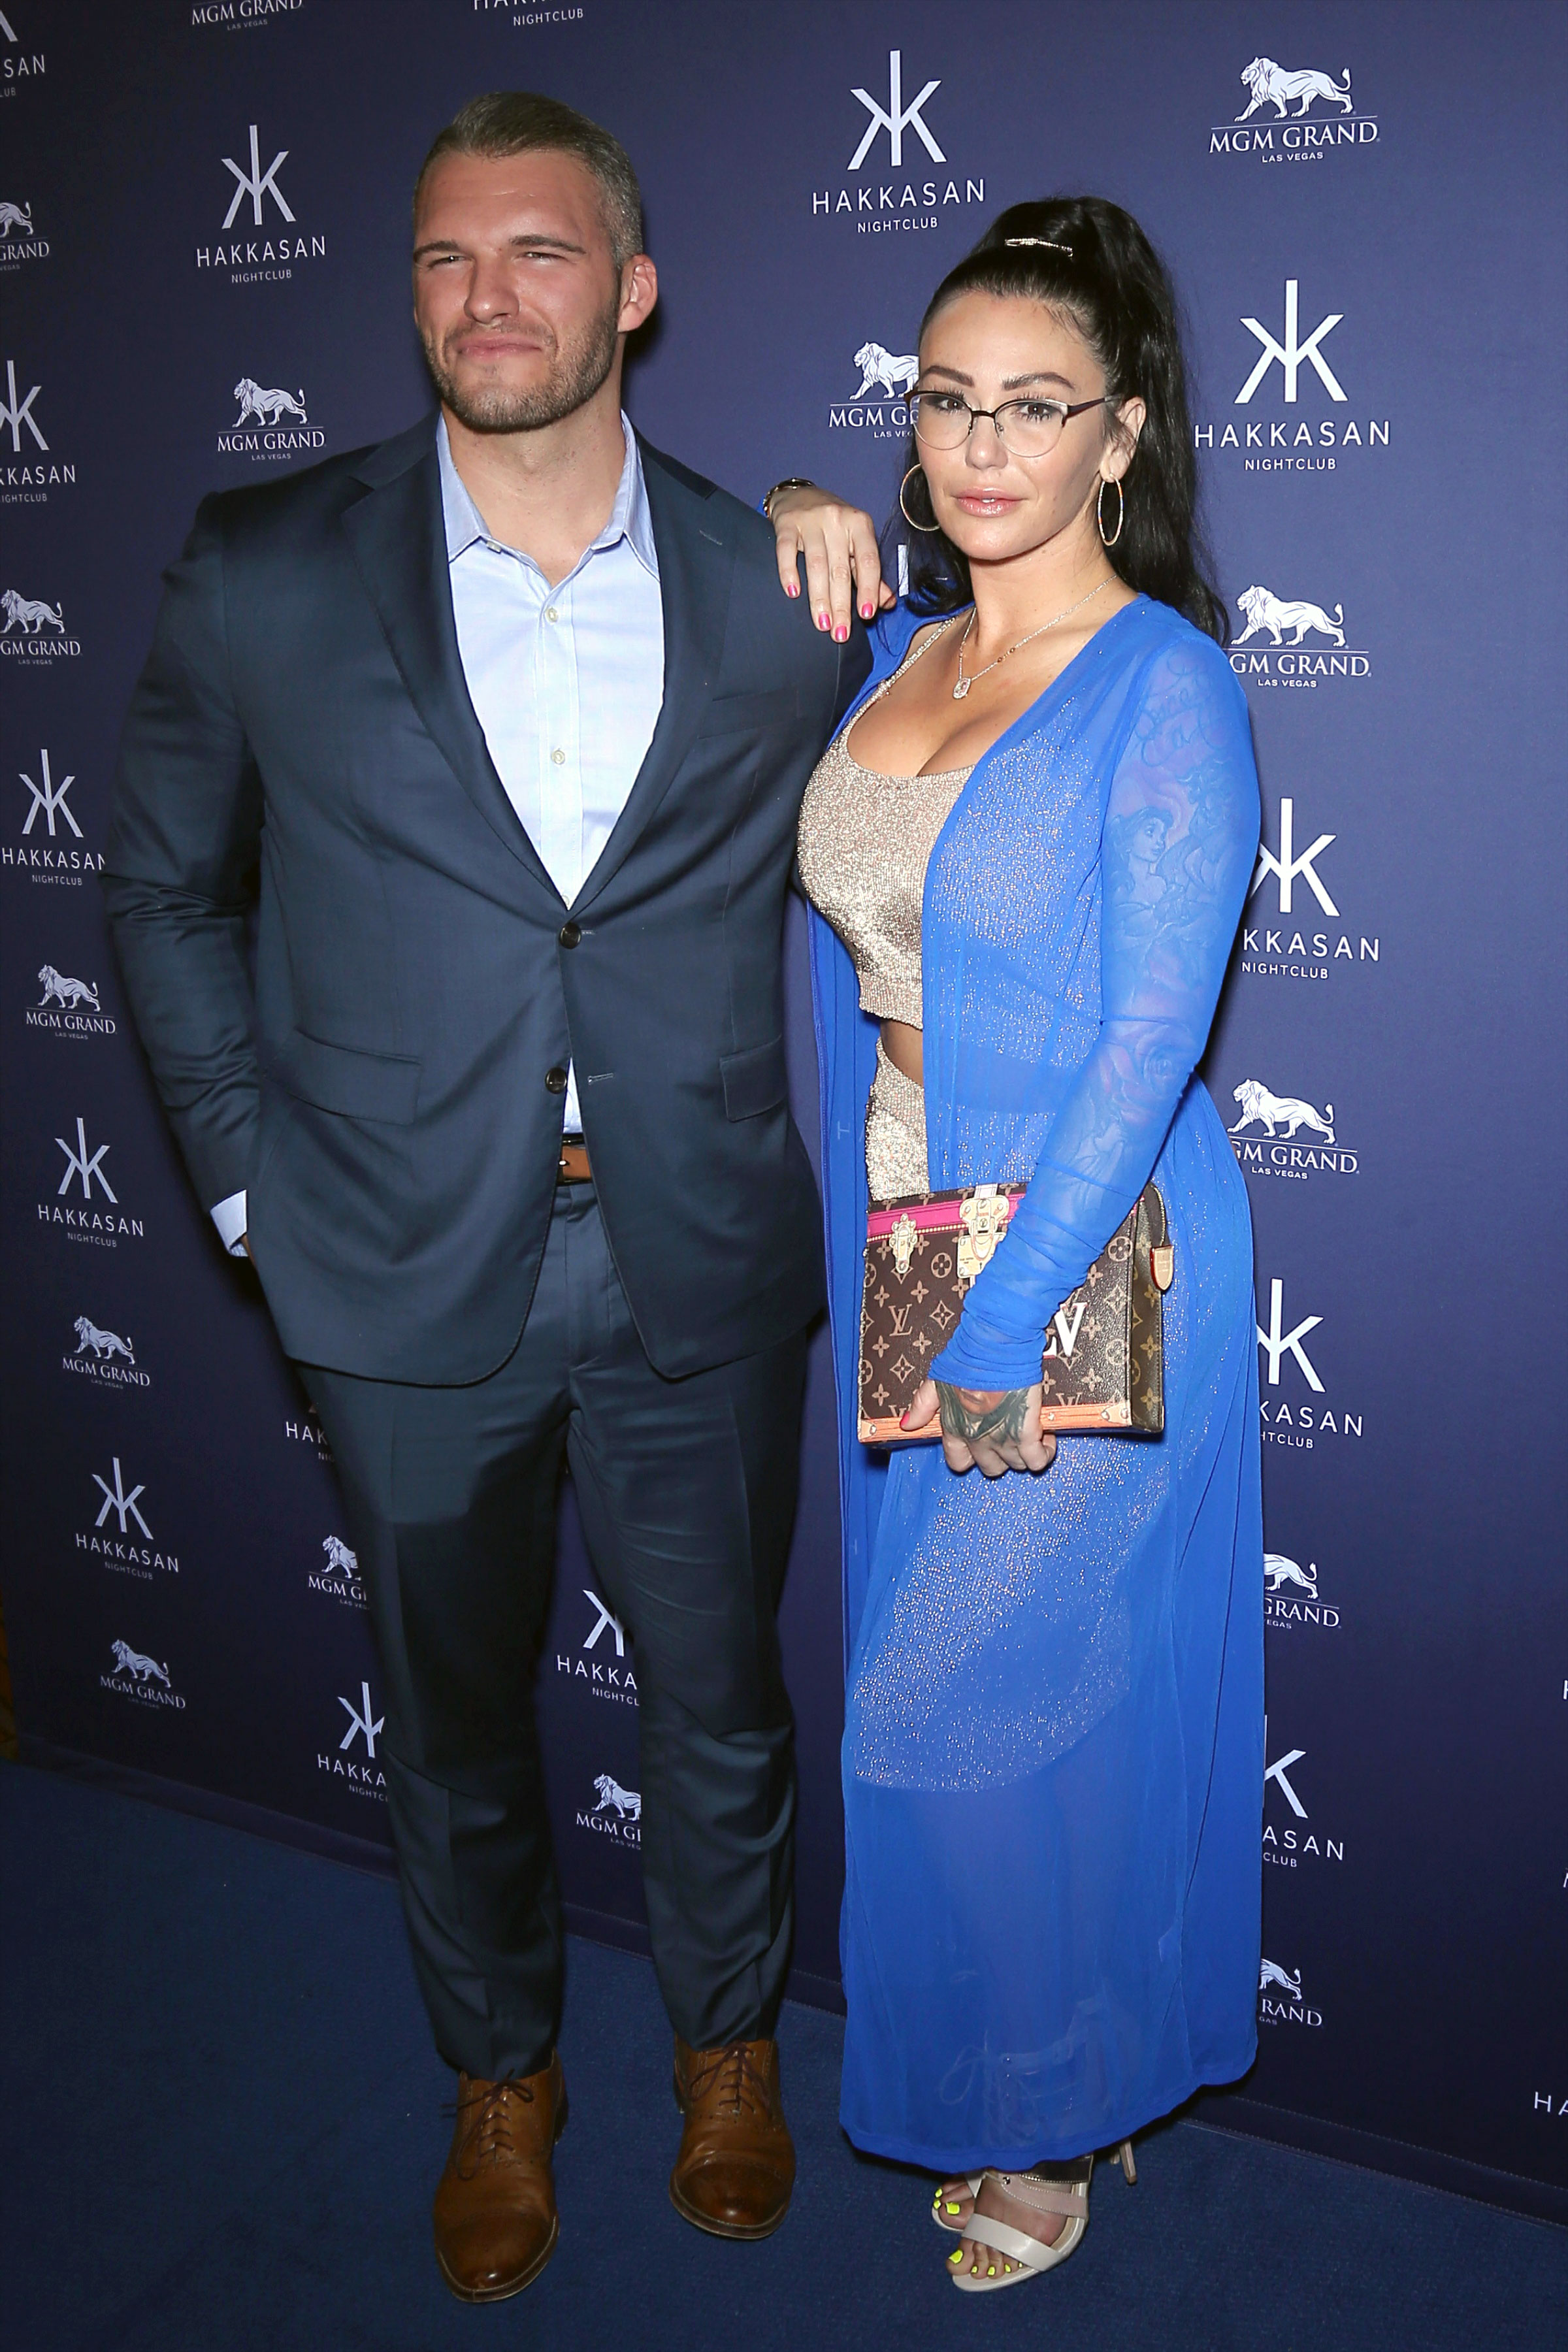 JWoww and Her BF Make Red Carpet Debut in Vegas, Party at Nightclubs - Hakkasan Nightclub at MGM Grand Hotel & Casino welcomes Jersey Shore star Jenni 'JWoww' Farley and her new boyfriend, Zack Clayton Carpinello.